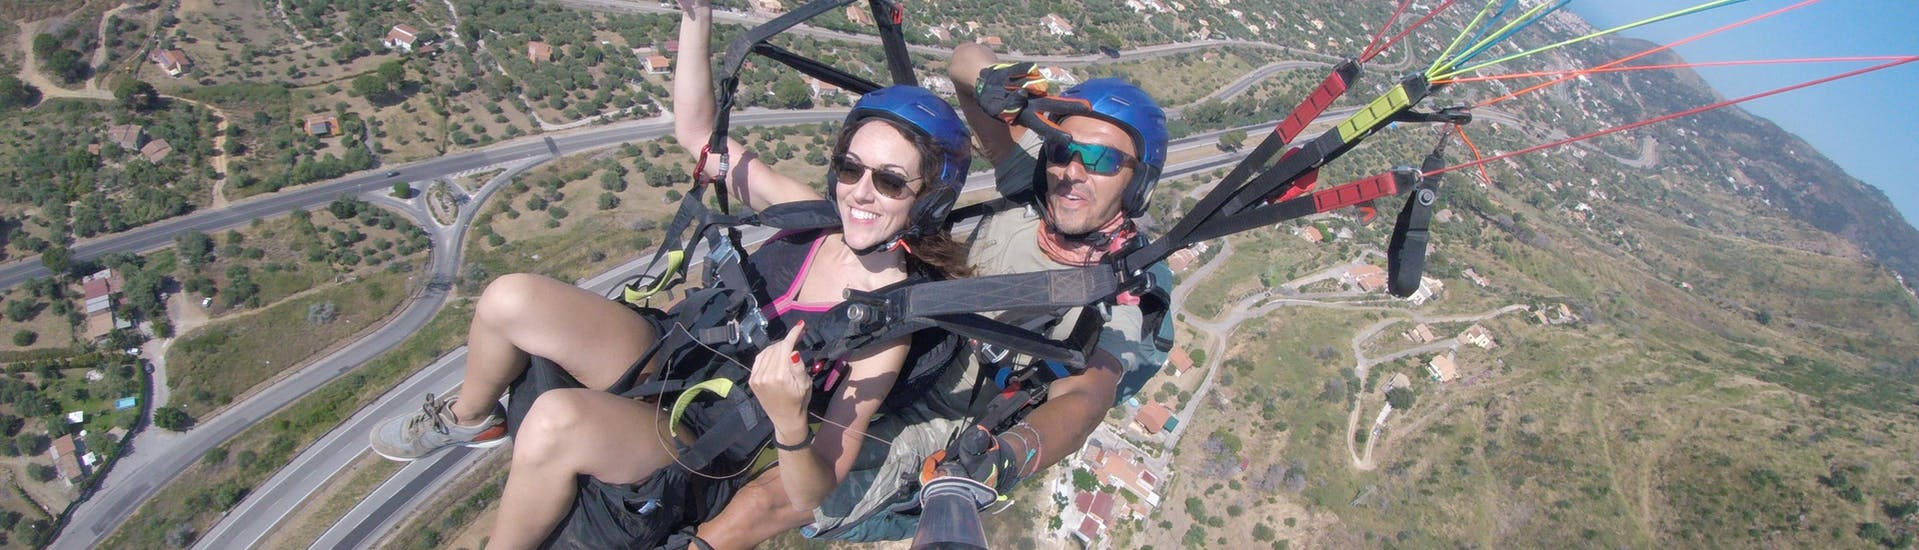 Tandem Paragliding in Cefalù - Classic with Sicily Paragliding - Hero image